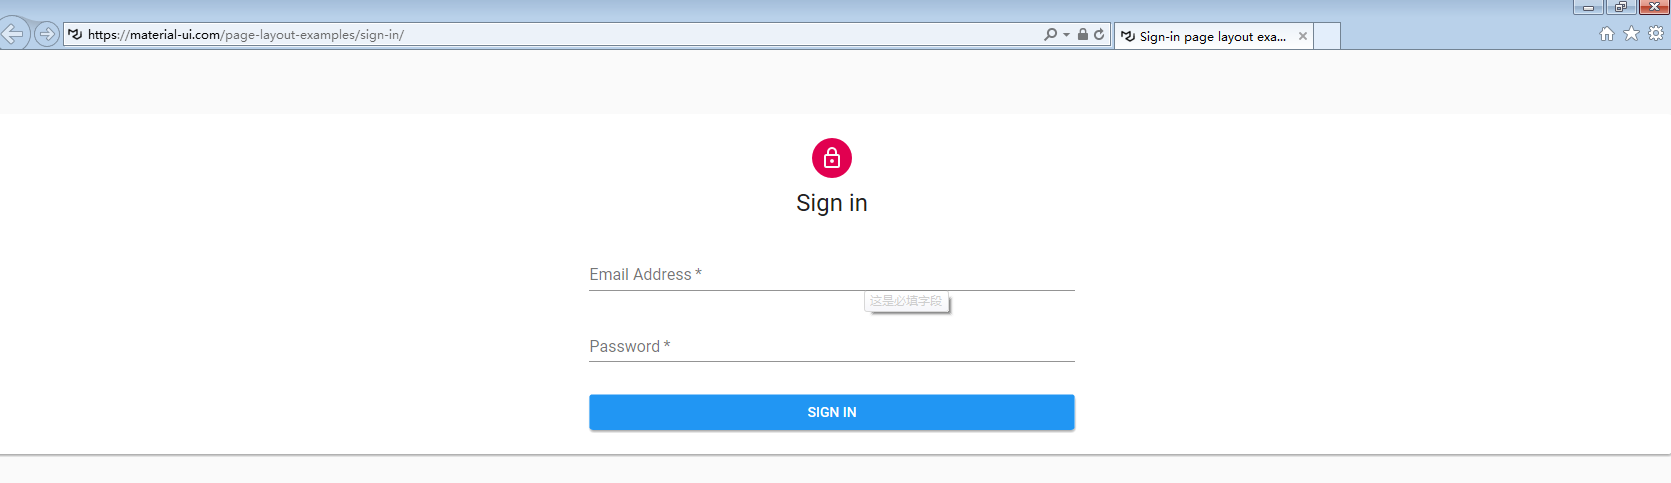 The Sing In Page Layout Sample Does Not Work Well On Ie 11 Issue